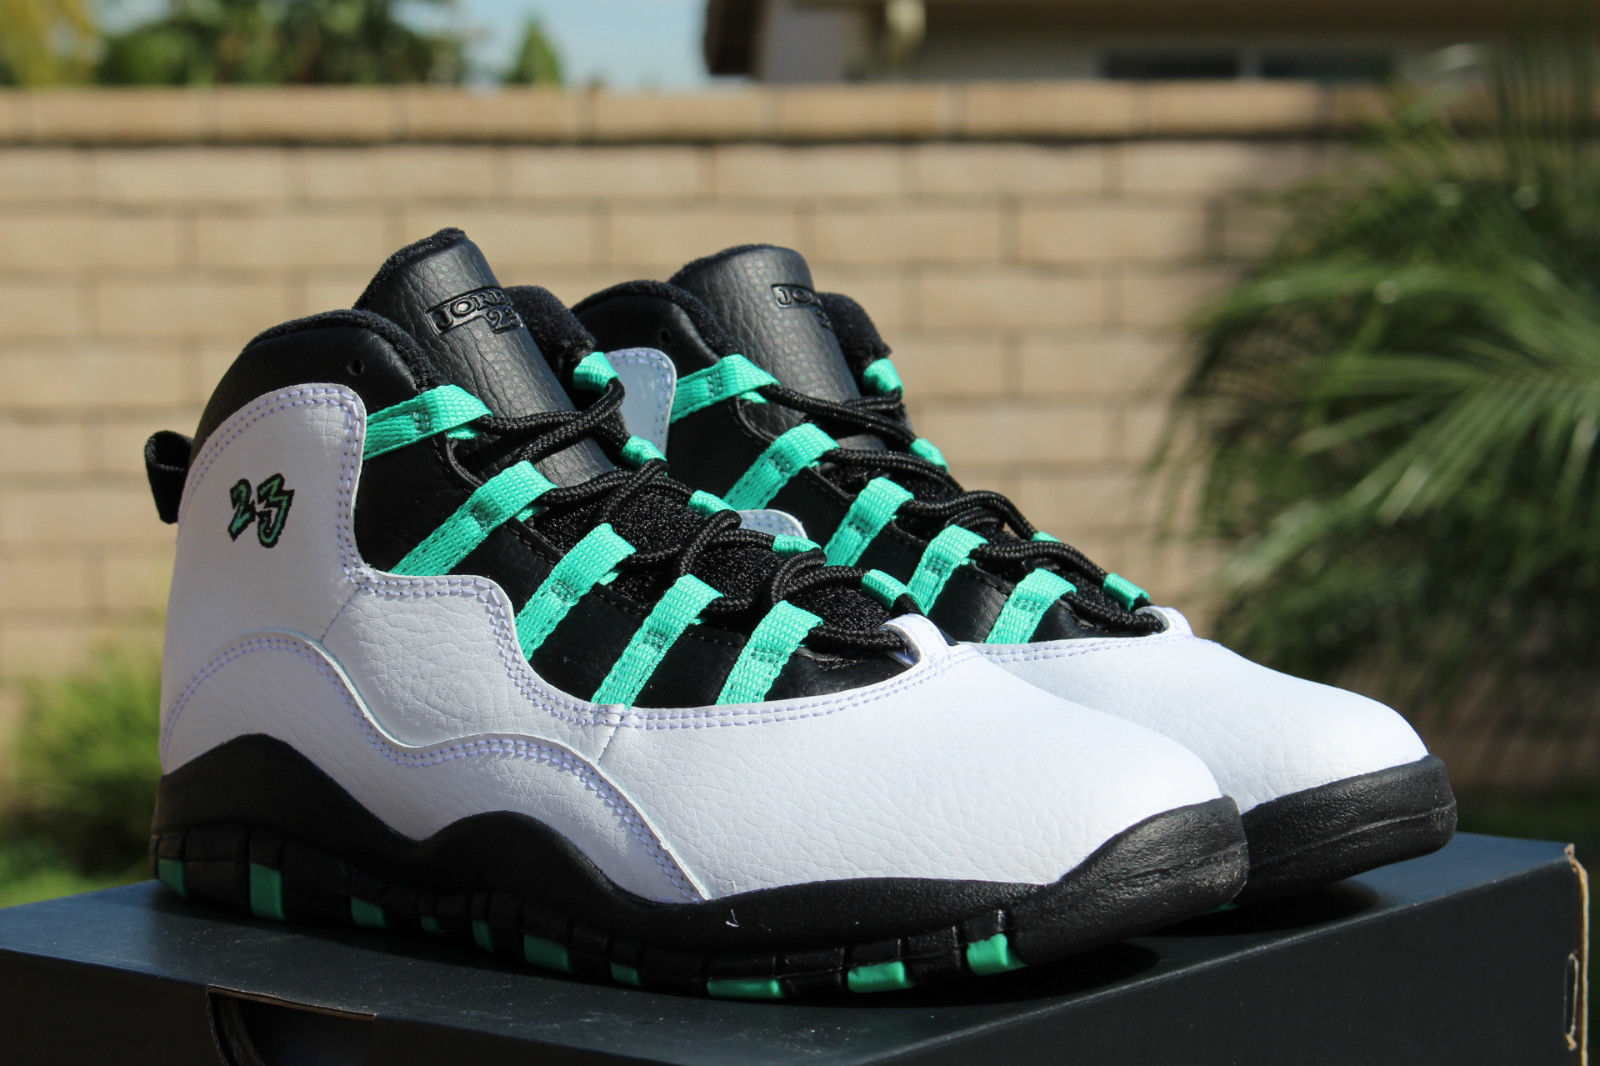 wholesale dealer 1462d 6afd4 ... closeout girls air jordan 10 verde marks double nickel history too air  jordans release dates more